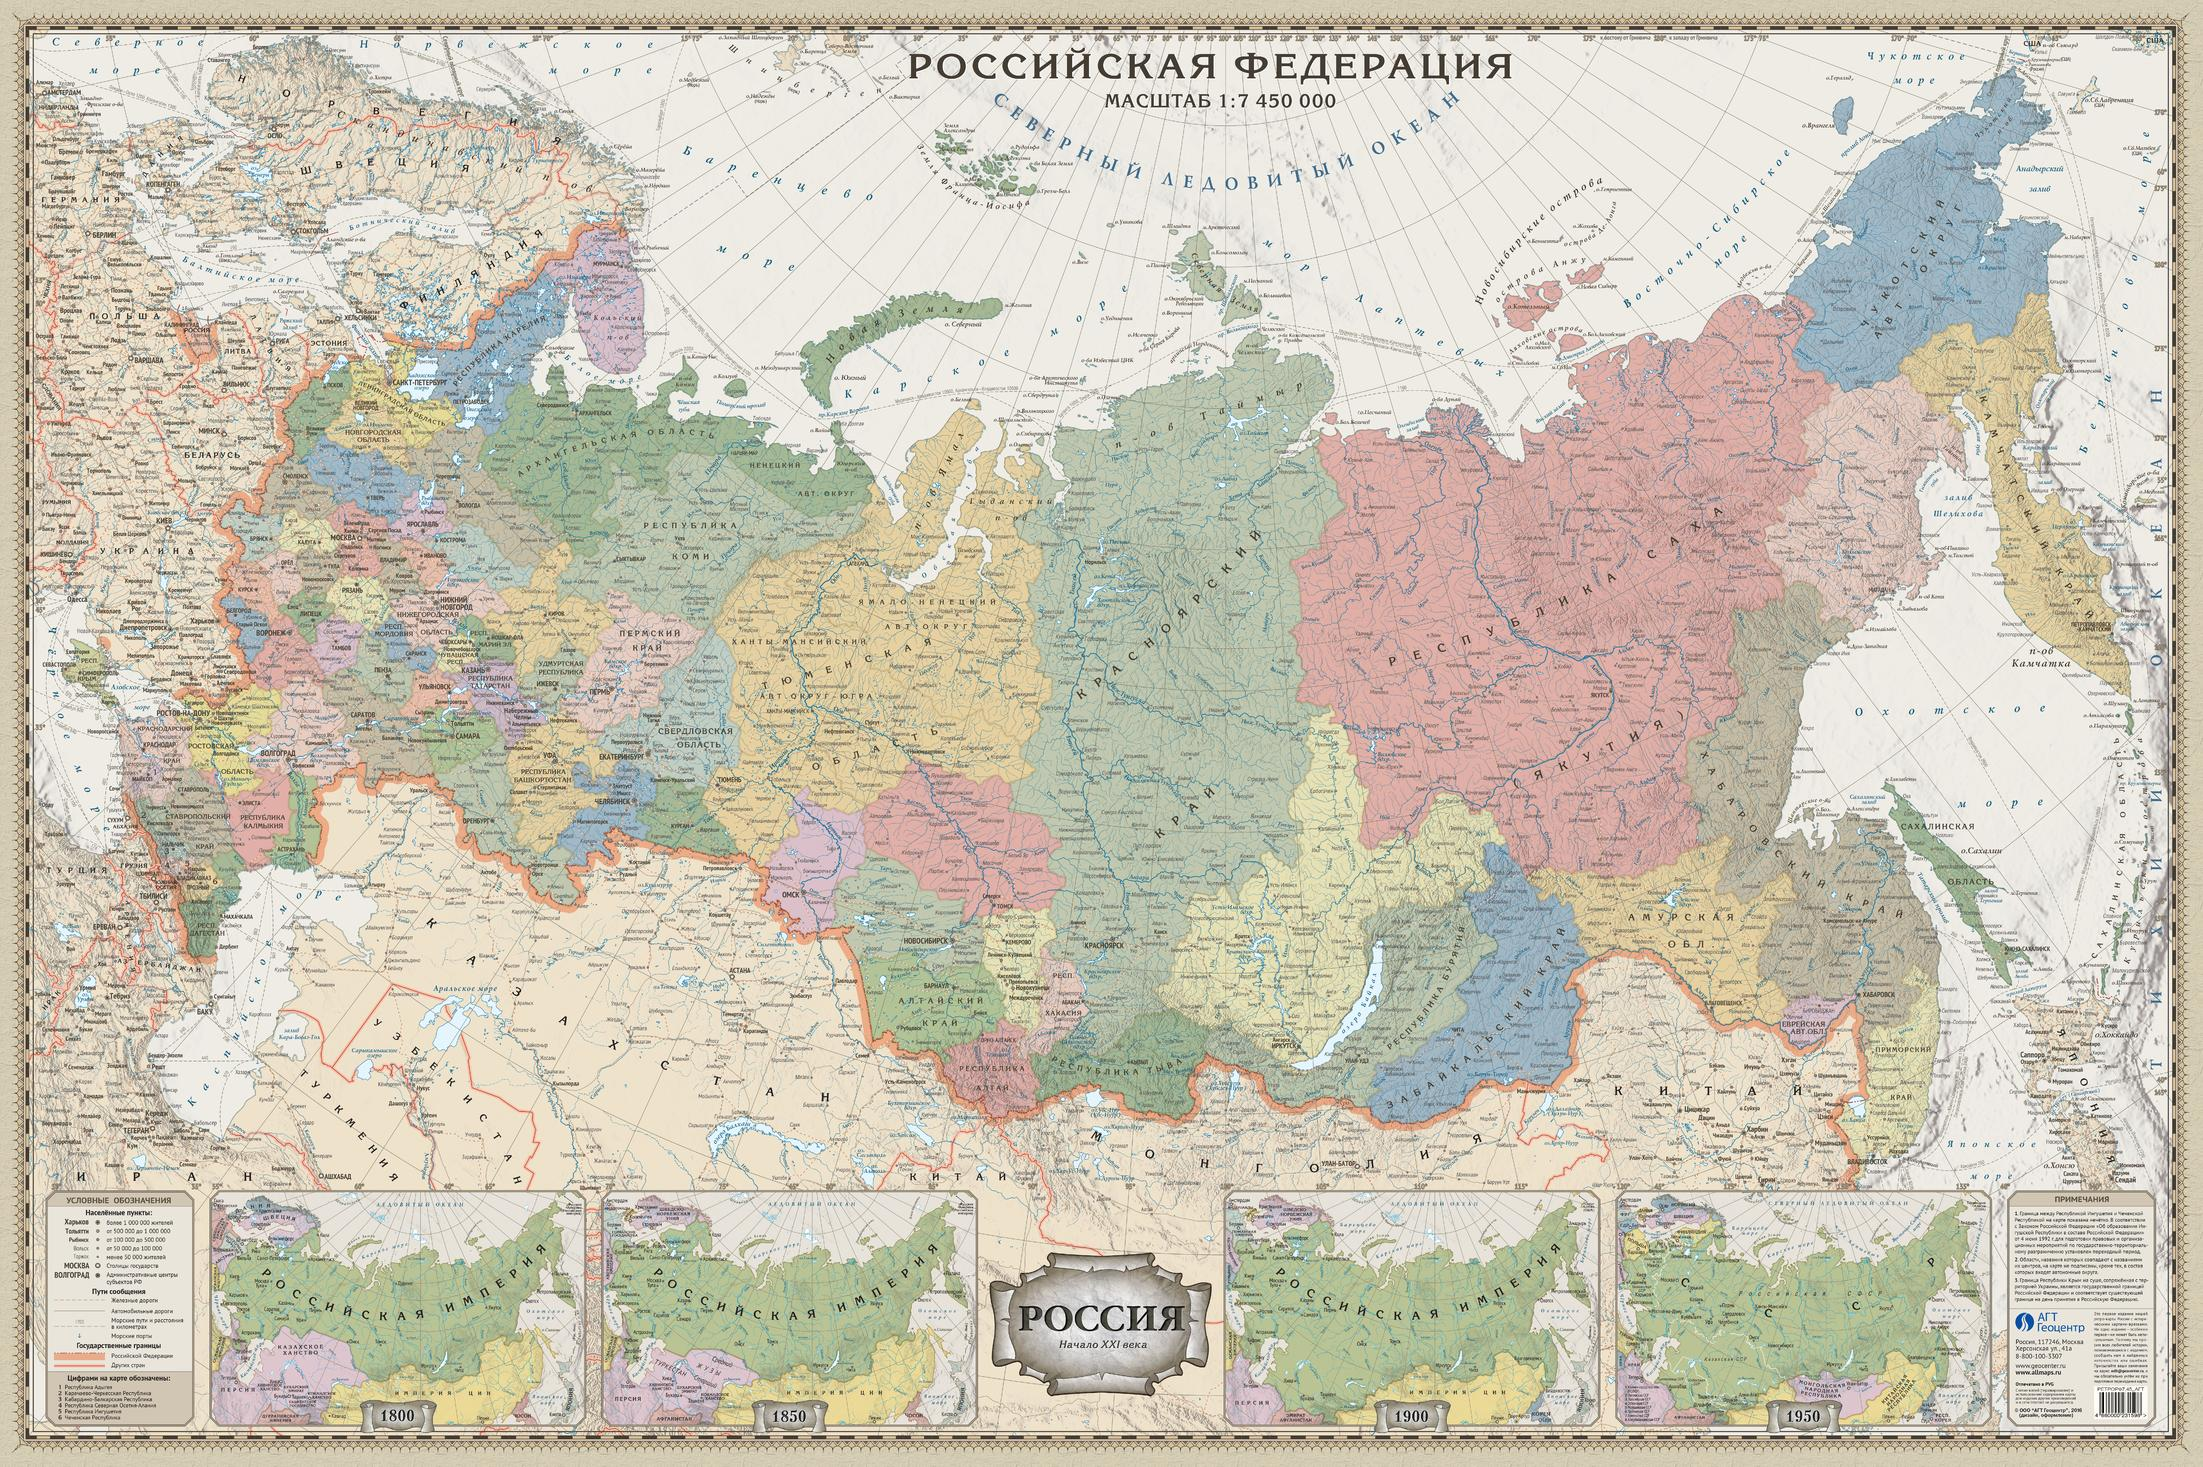 Map Of Russia In Russian.Russia Wall Map Retro Antique Style In Russian